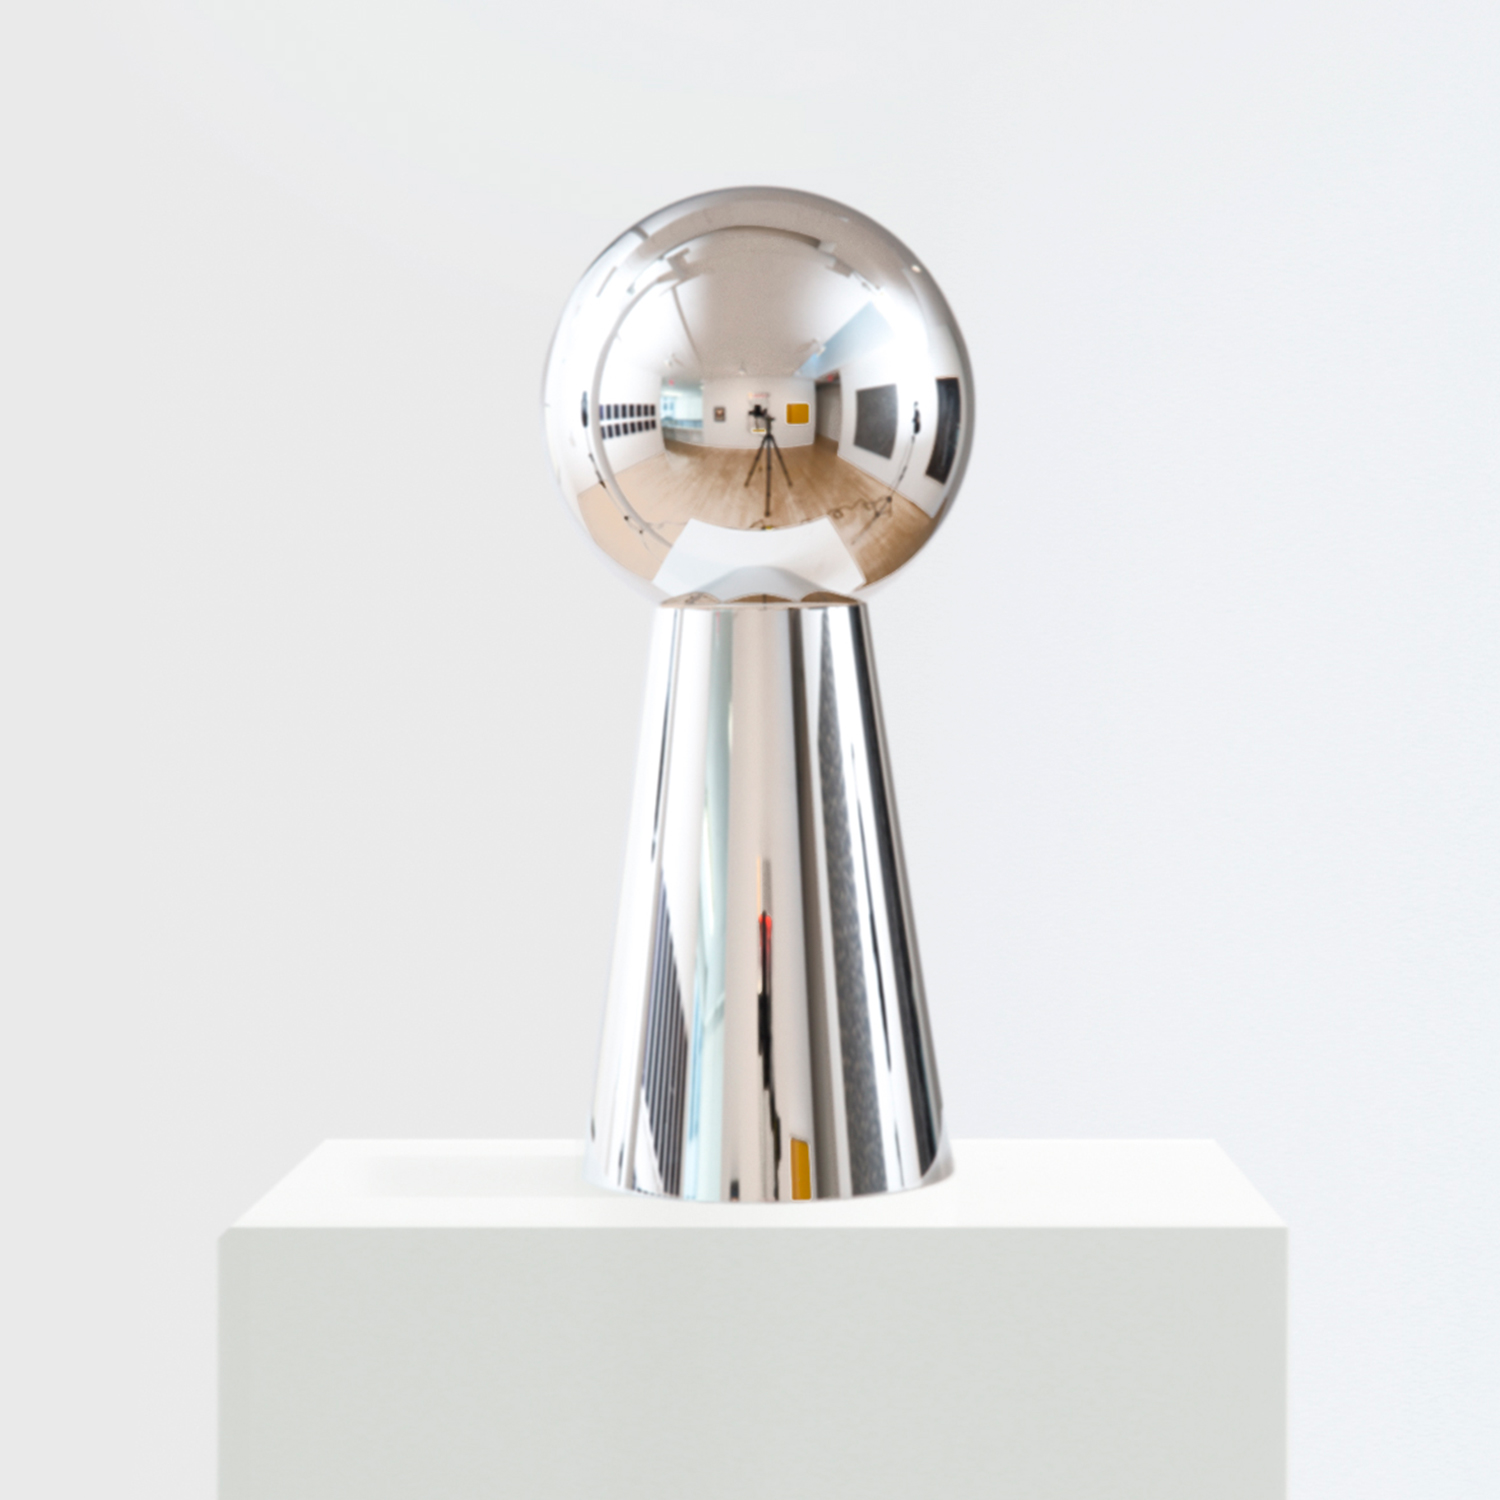 Iran do Espírito Santo                                         'Untitled (Keyhole)', 2004                                         17.5 x 7.9 x 7.9 Inches                                         stainless steel